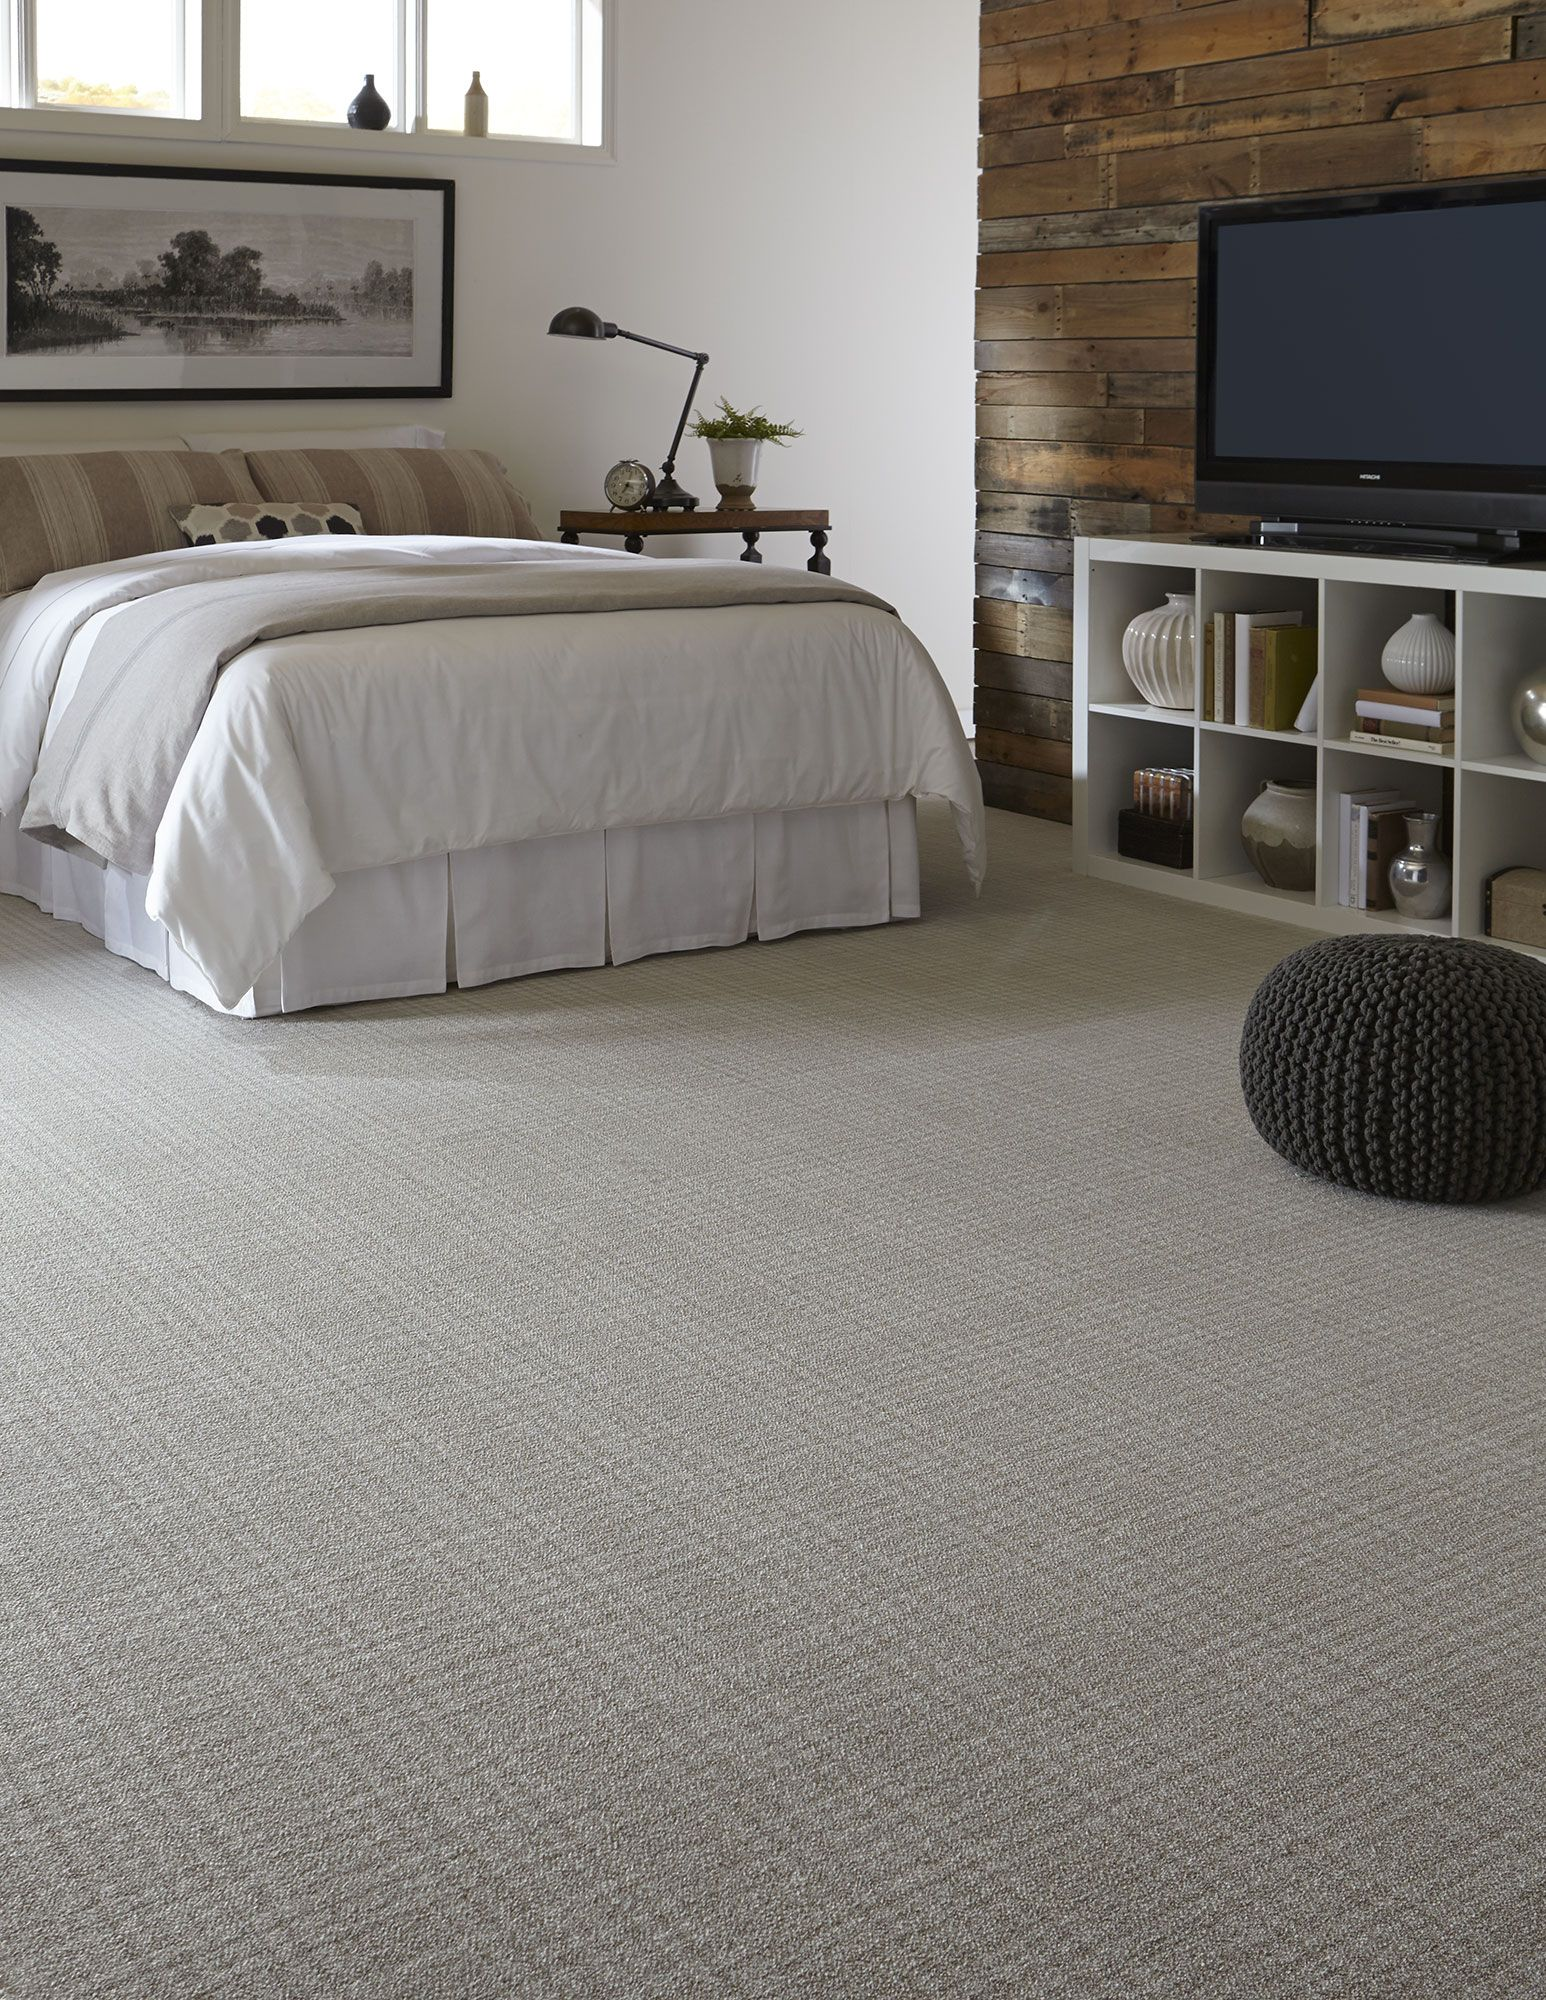 Woven Patterned Carpet  Warm Gray Flooring  Personal